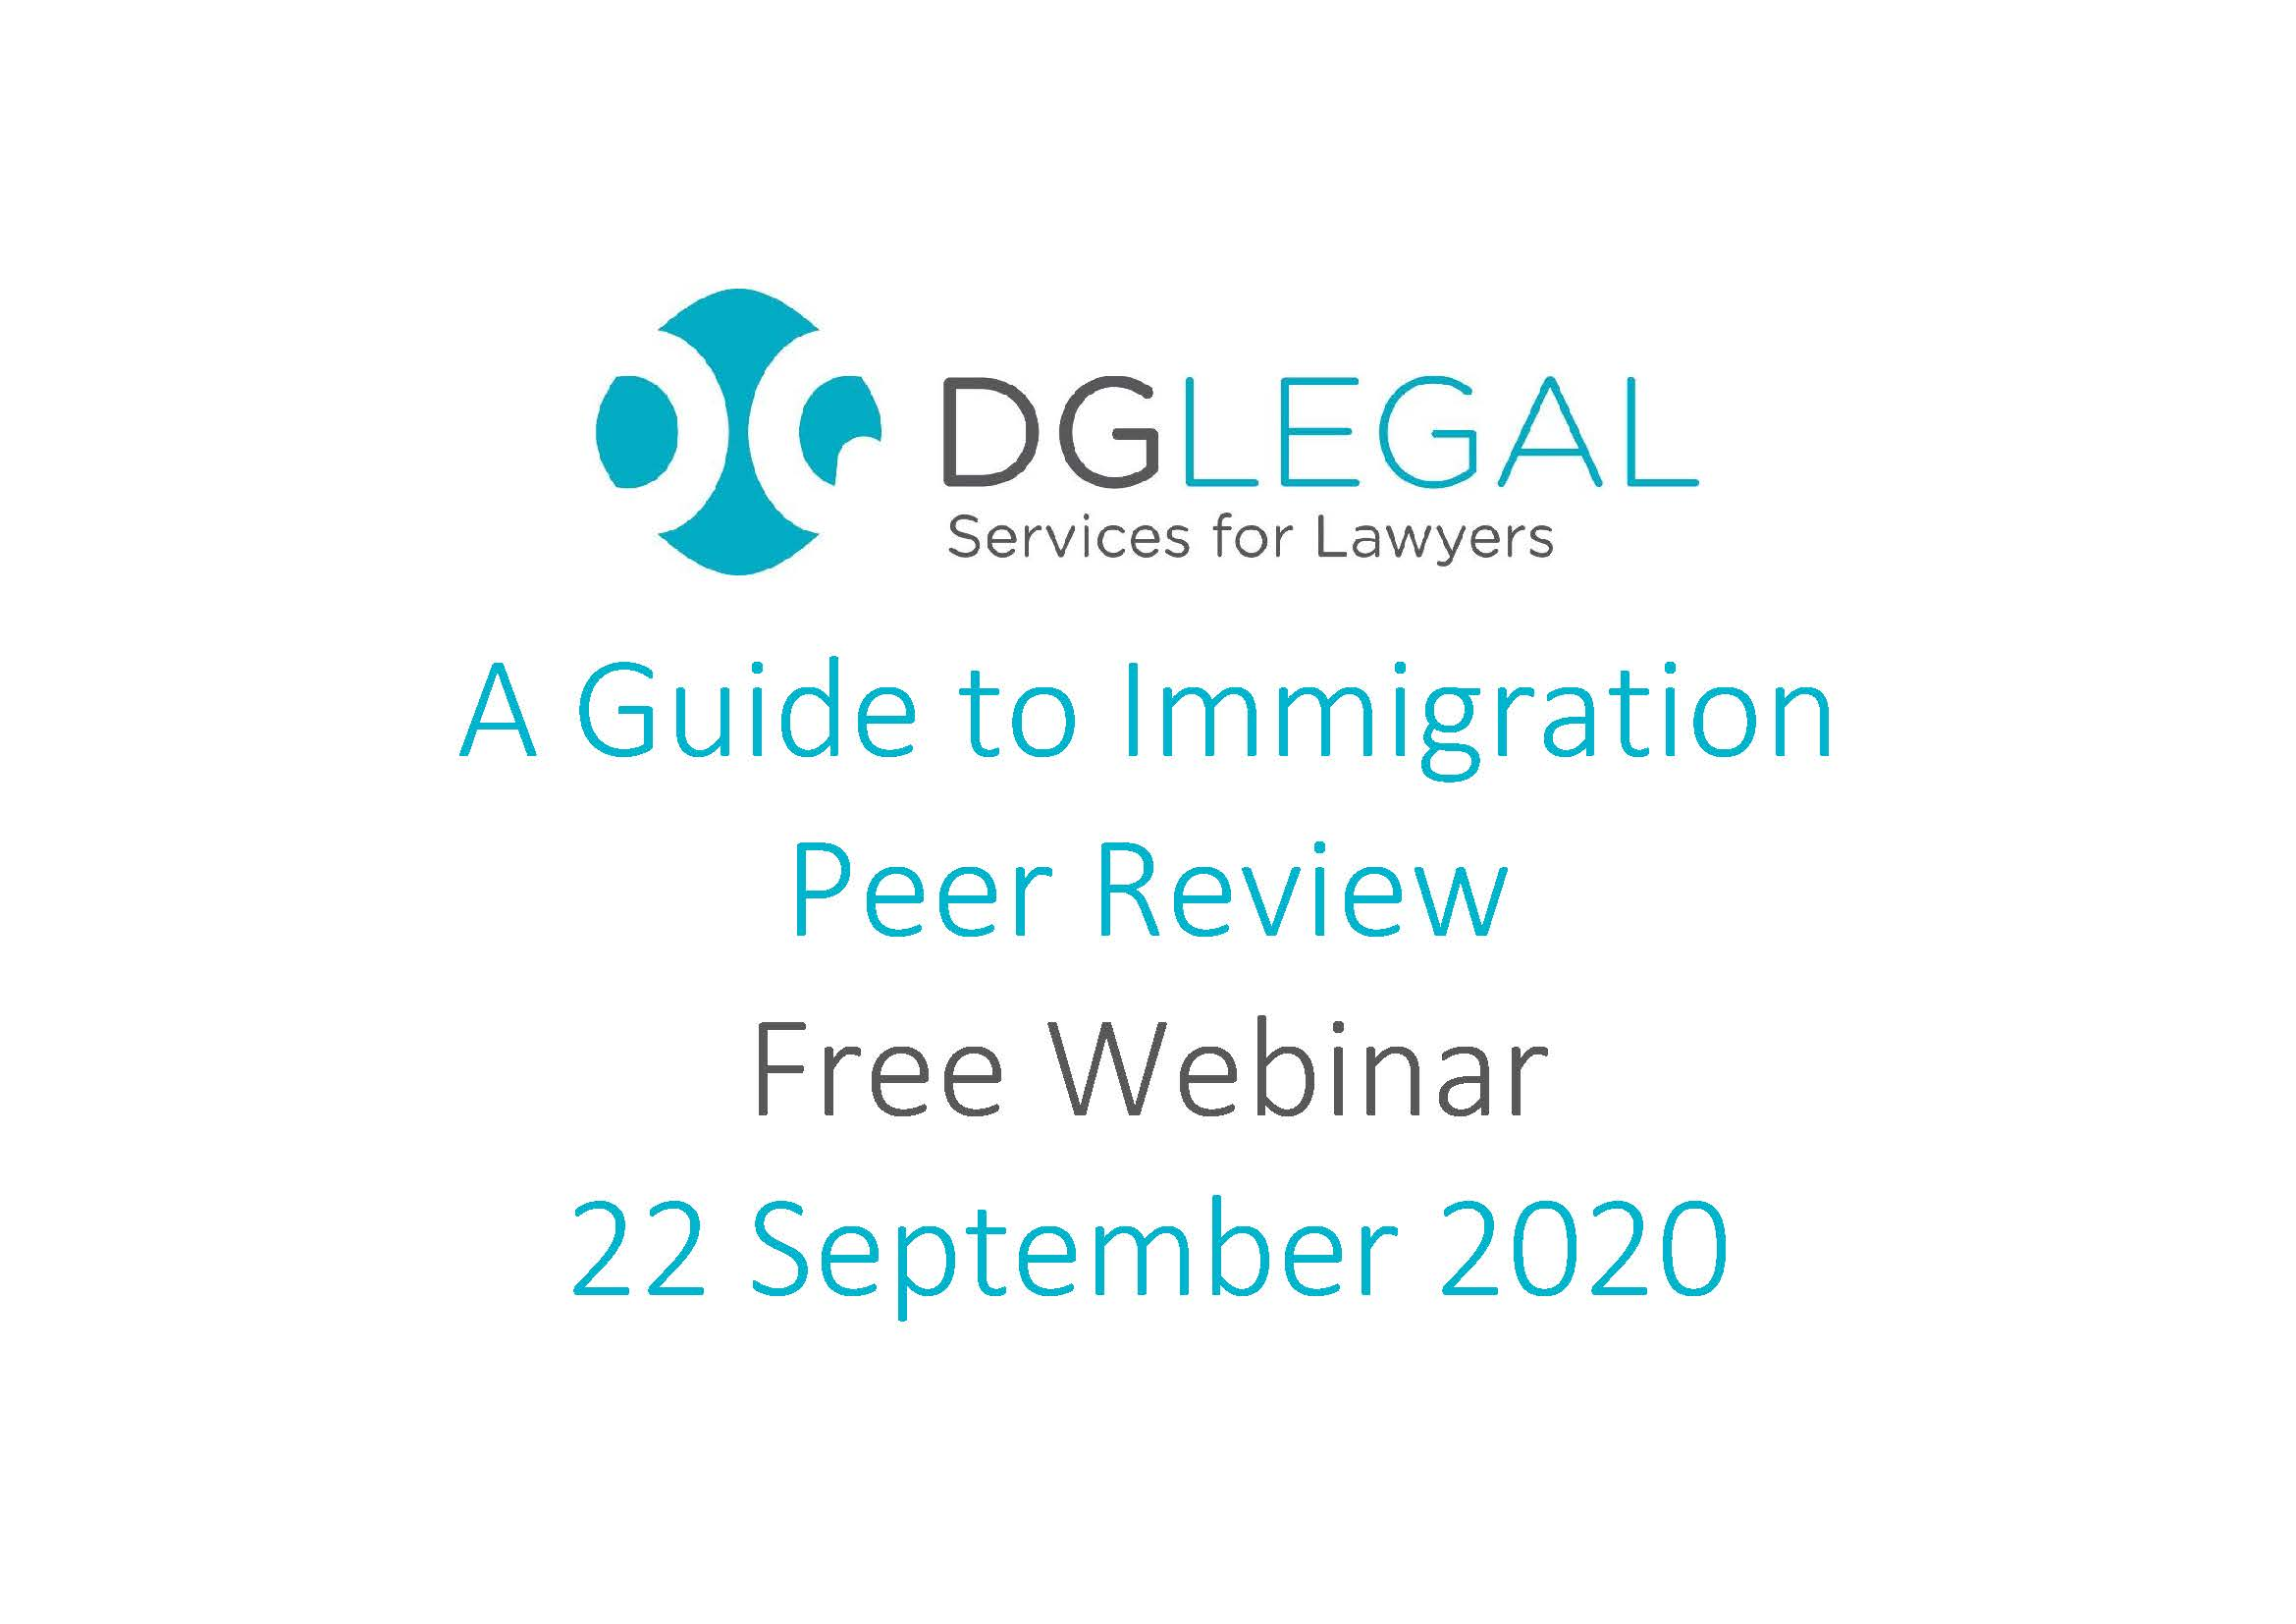 A Guide to Immigration Peer Review Webinar